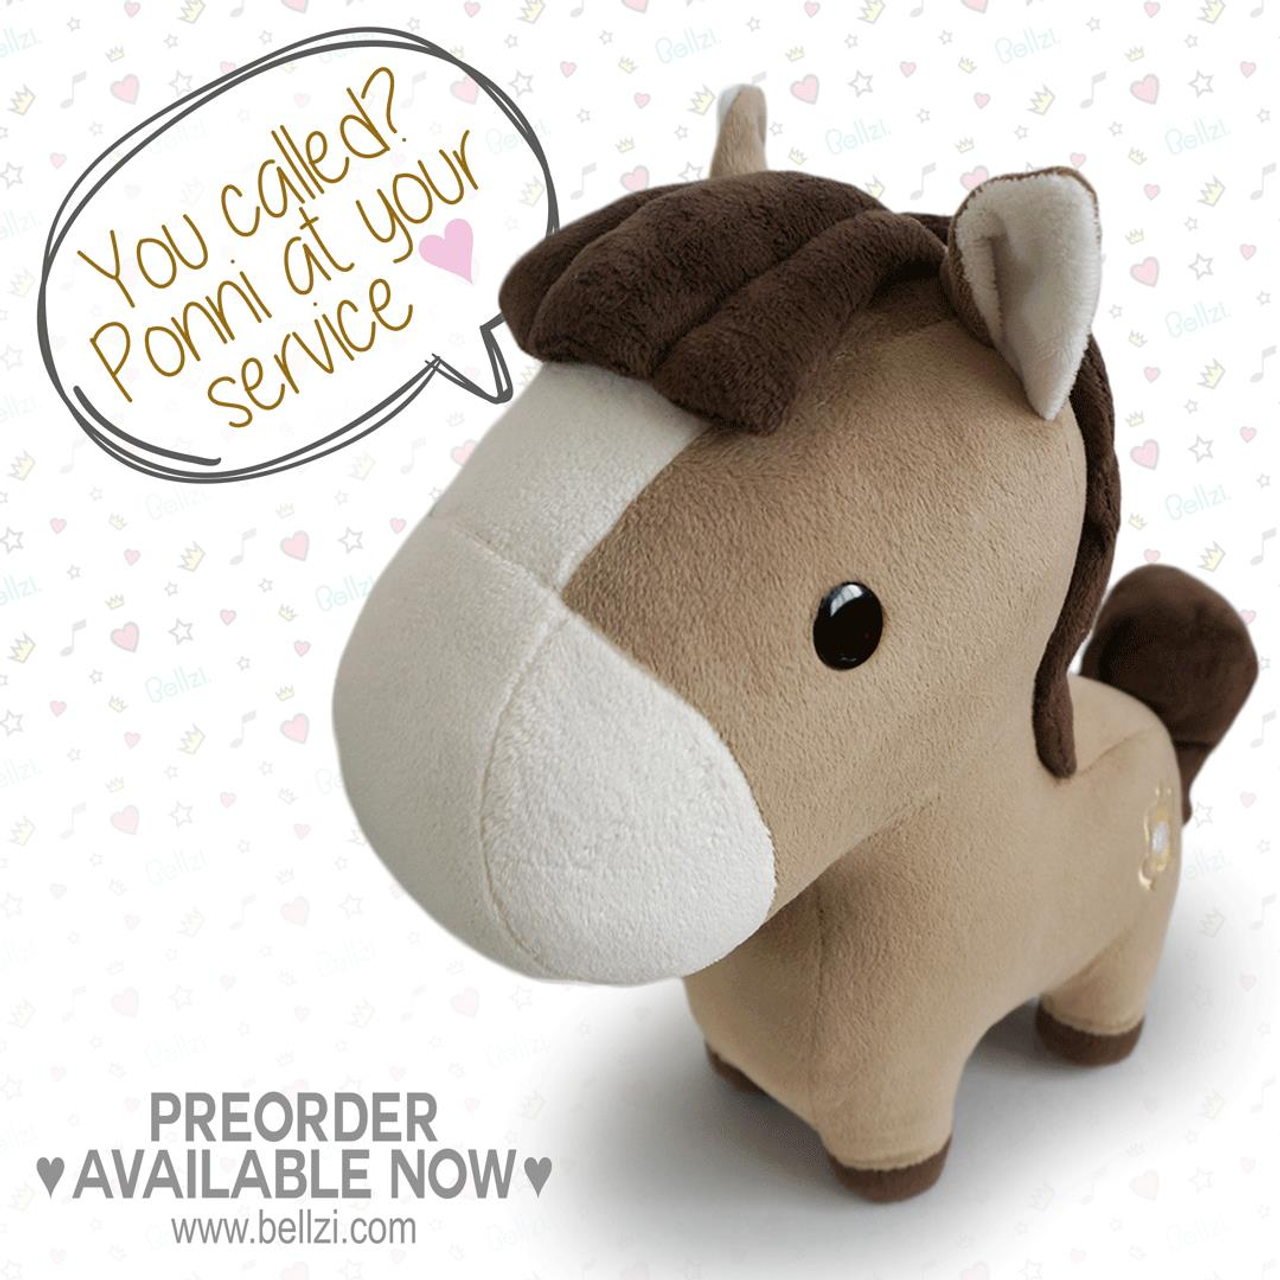 Bellzi Ponni the Cute Pony Stuffed Animal Plush